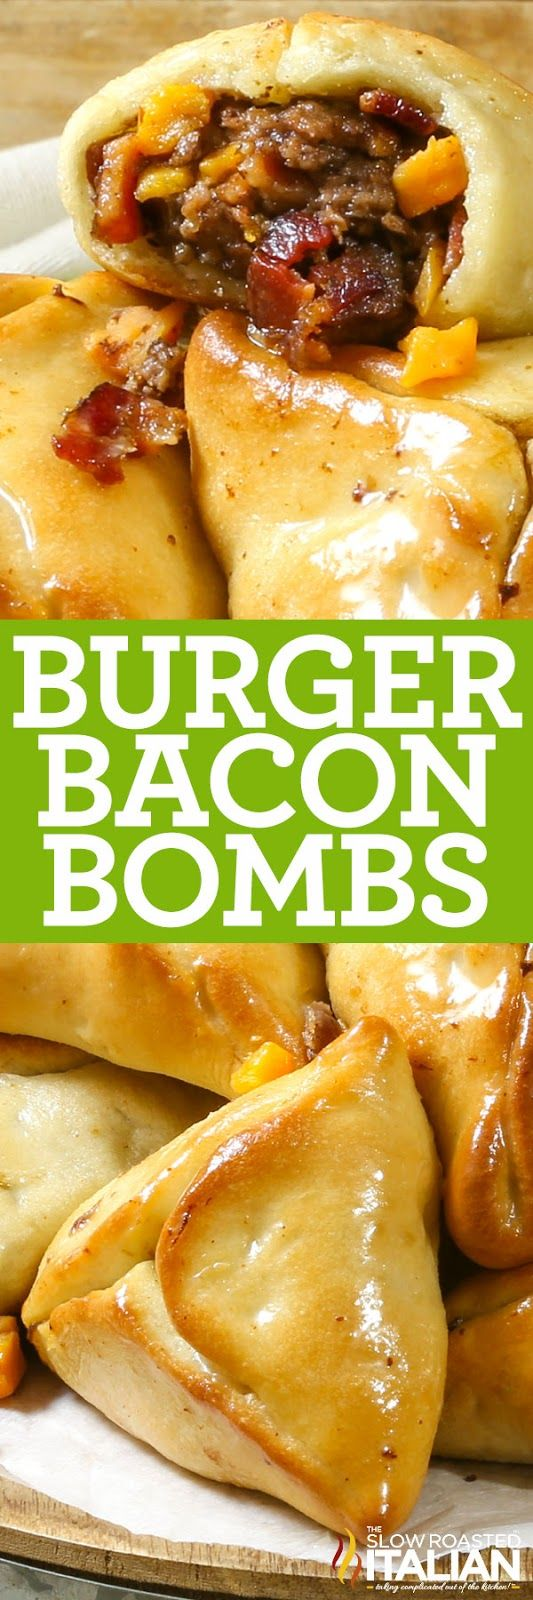 Bacon Burger Bombs are a modern twist on a family tradition! Stuffed burger pockets are perfectly seasoned and loaded with bacon. Soft and tender dough envelopes the bacon-flavor explosion. This simple recipe is sure to become a regular in your kitchen too! Partnered with @JonesDairyFarm #JonesFamilyRules #ad http://www.theslowroasteditalian.com/2017/12/bacon-burger-bombs.html